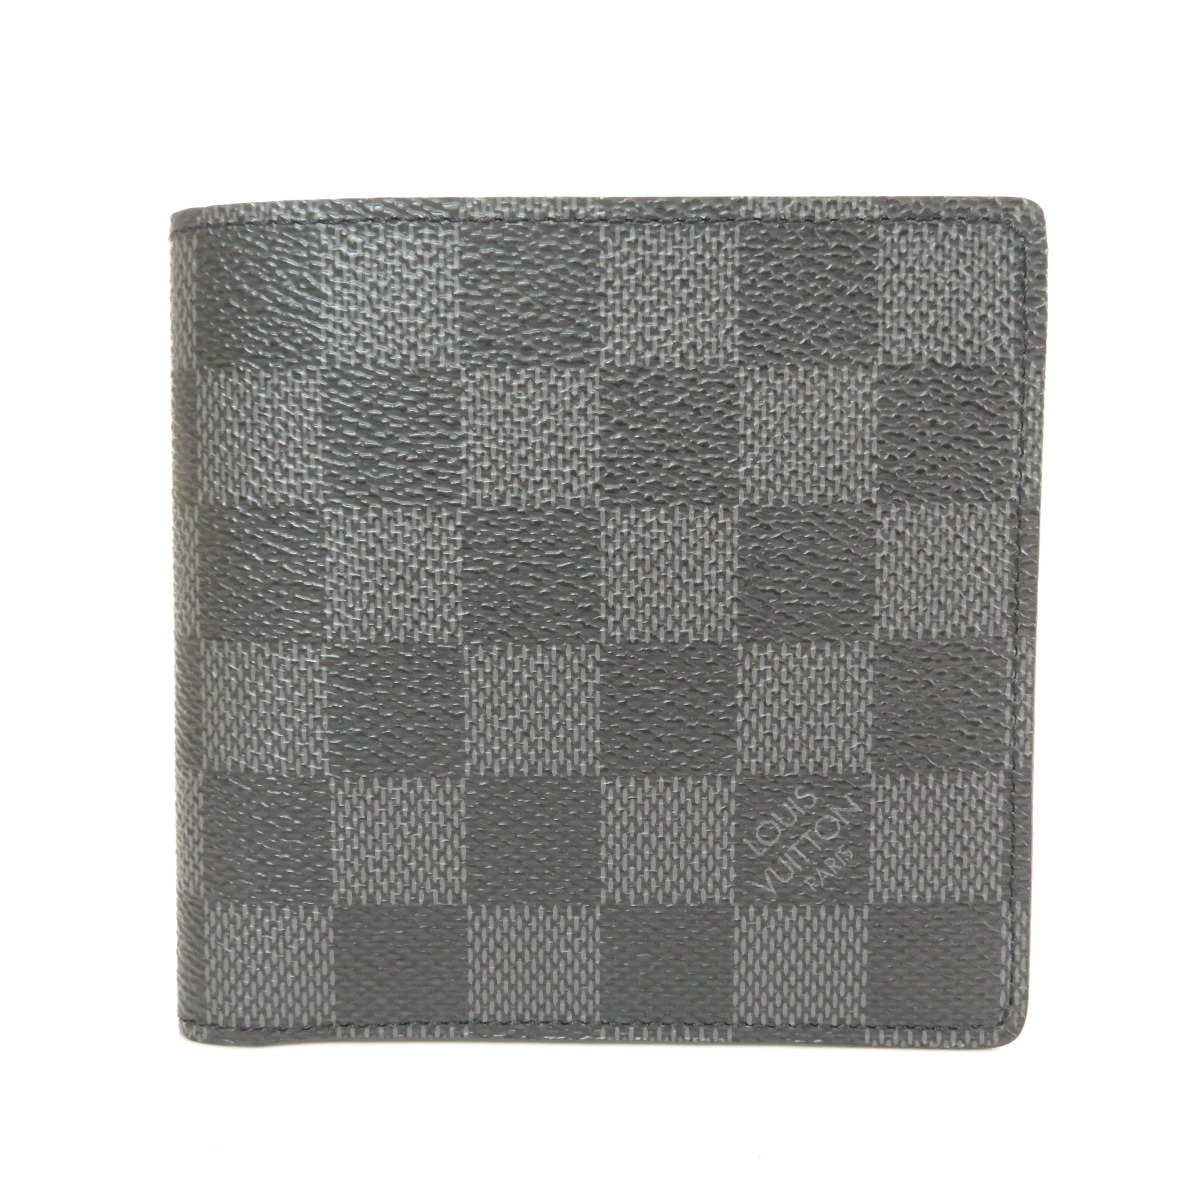 230fffe350e7 Portefeiulle · Marco N63336 Bifold Wallet with Coin Pocket Damier canvas  mens